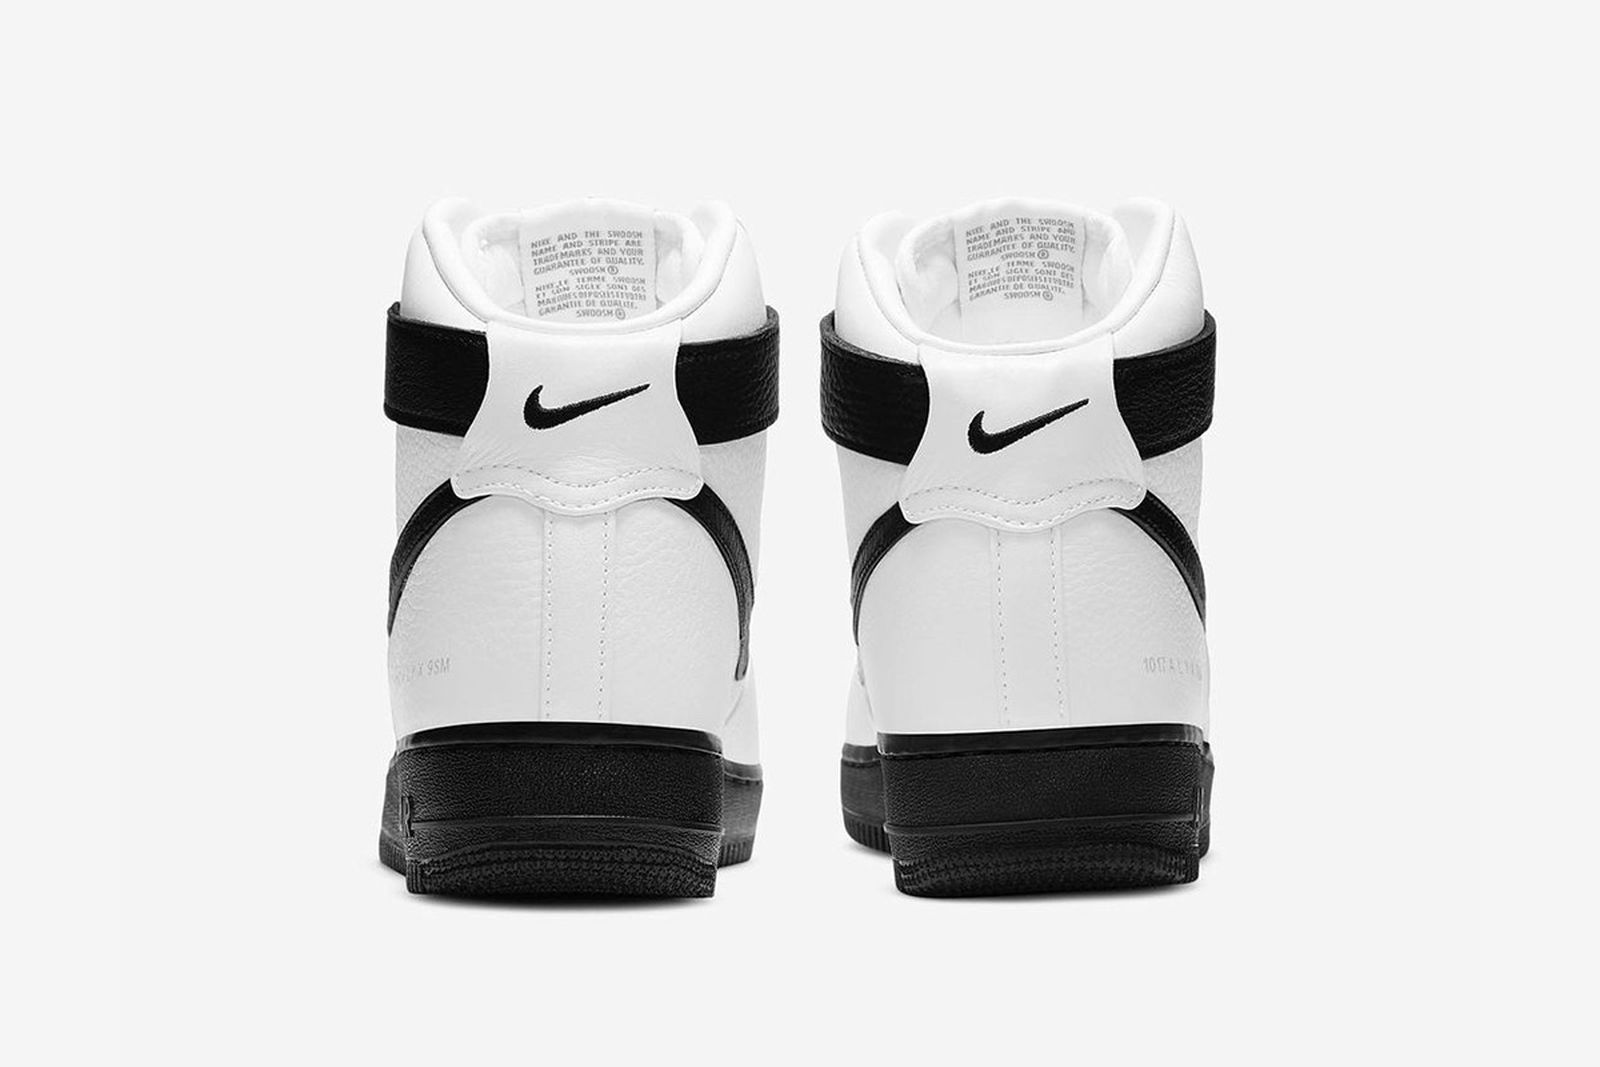 1017-alyx-9sm-nike-air-force-1-high-white-release-date-price-new-02